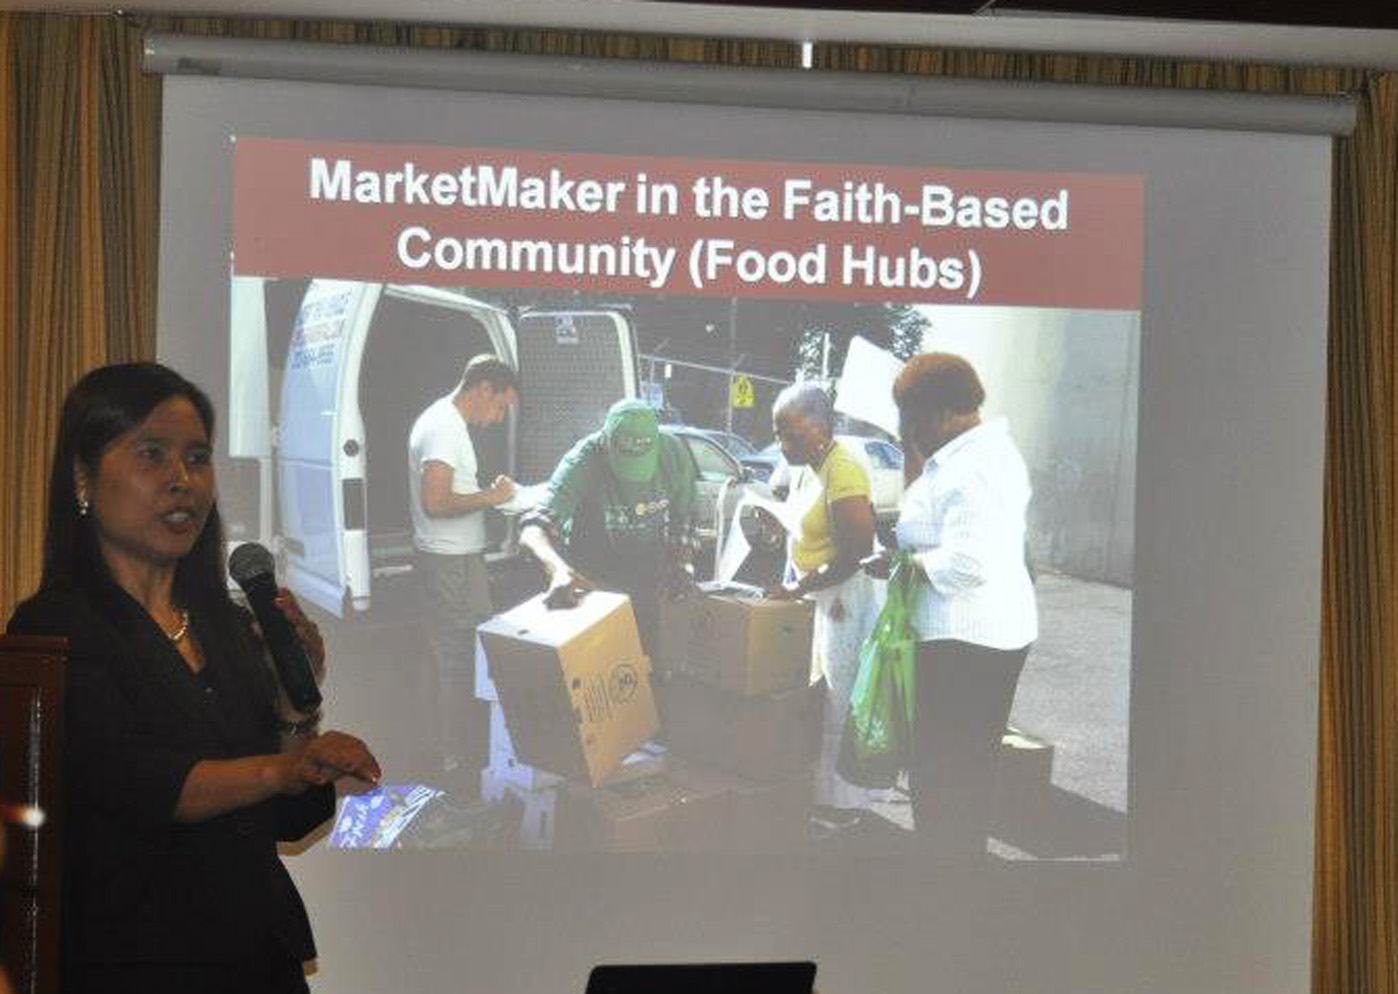 Dr. Khin Mar Cho presents the MarketMaker Program